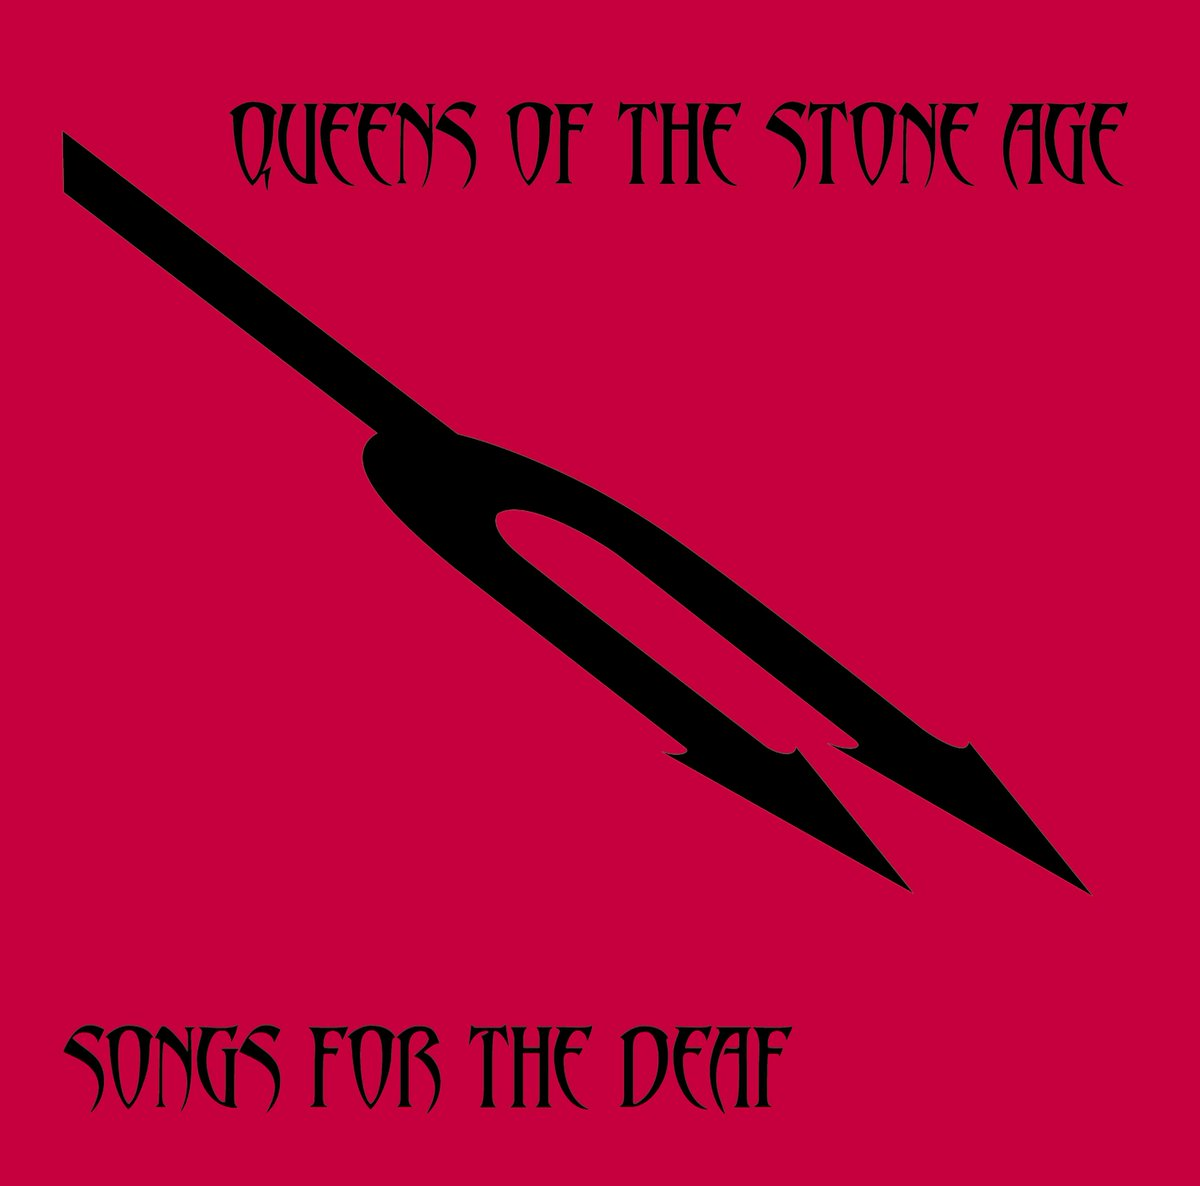 #SongsForTheDeaf was released 18 years ago today. 🖤 Listen again: queensofthestoneage.lnk.to/SFTD